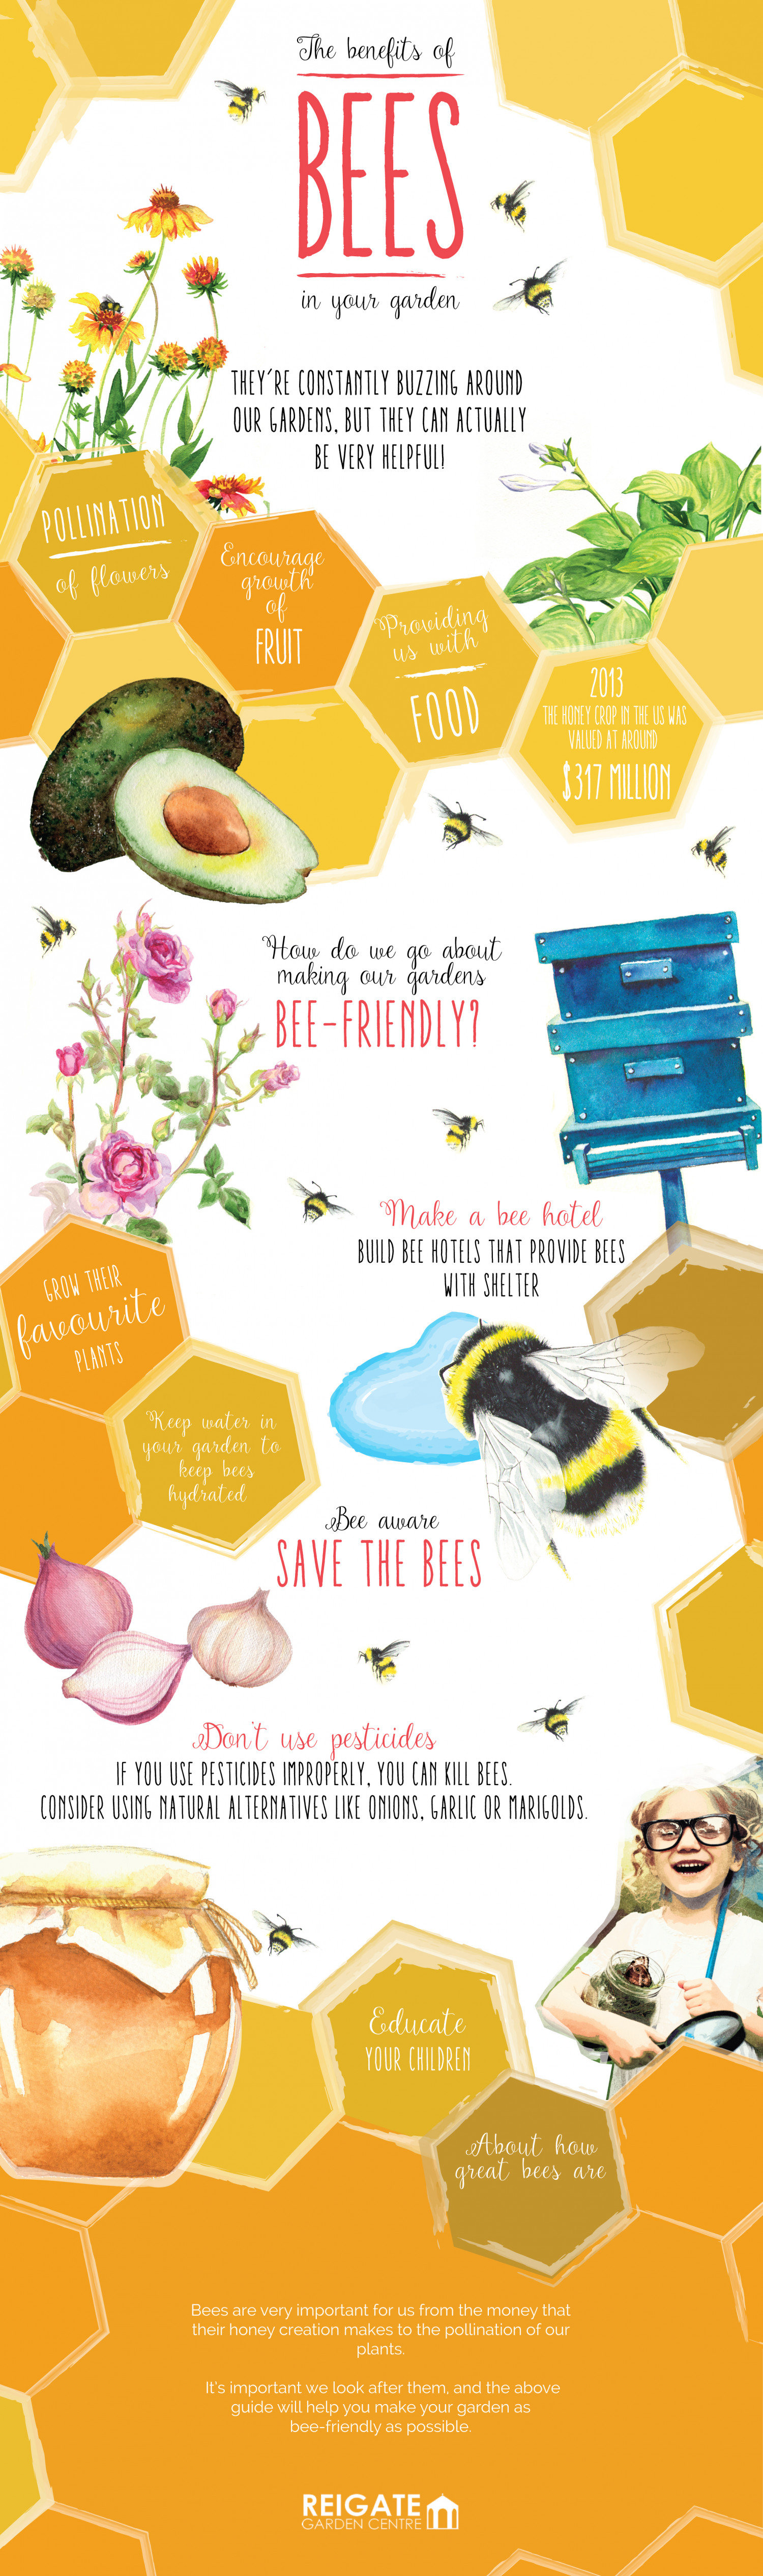 The Benefits of Bees In Your Garden  Infographic